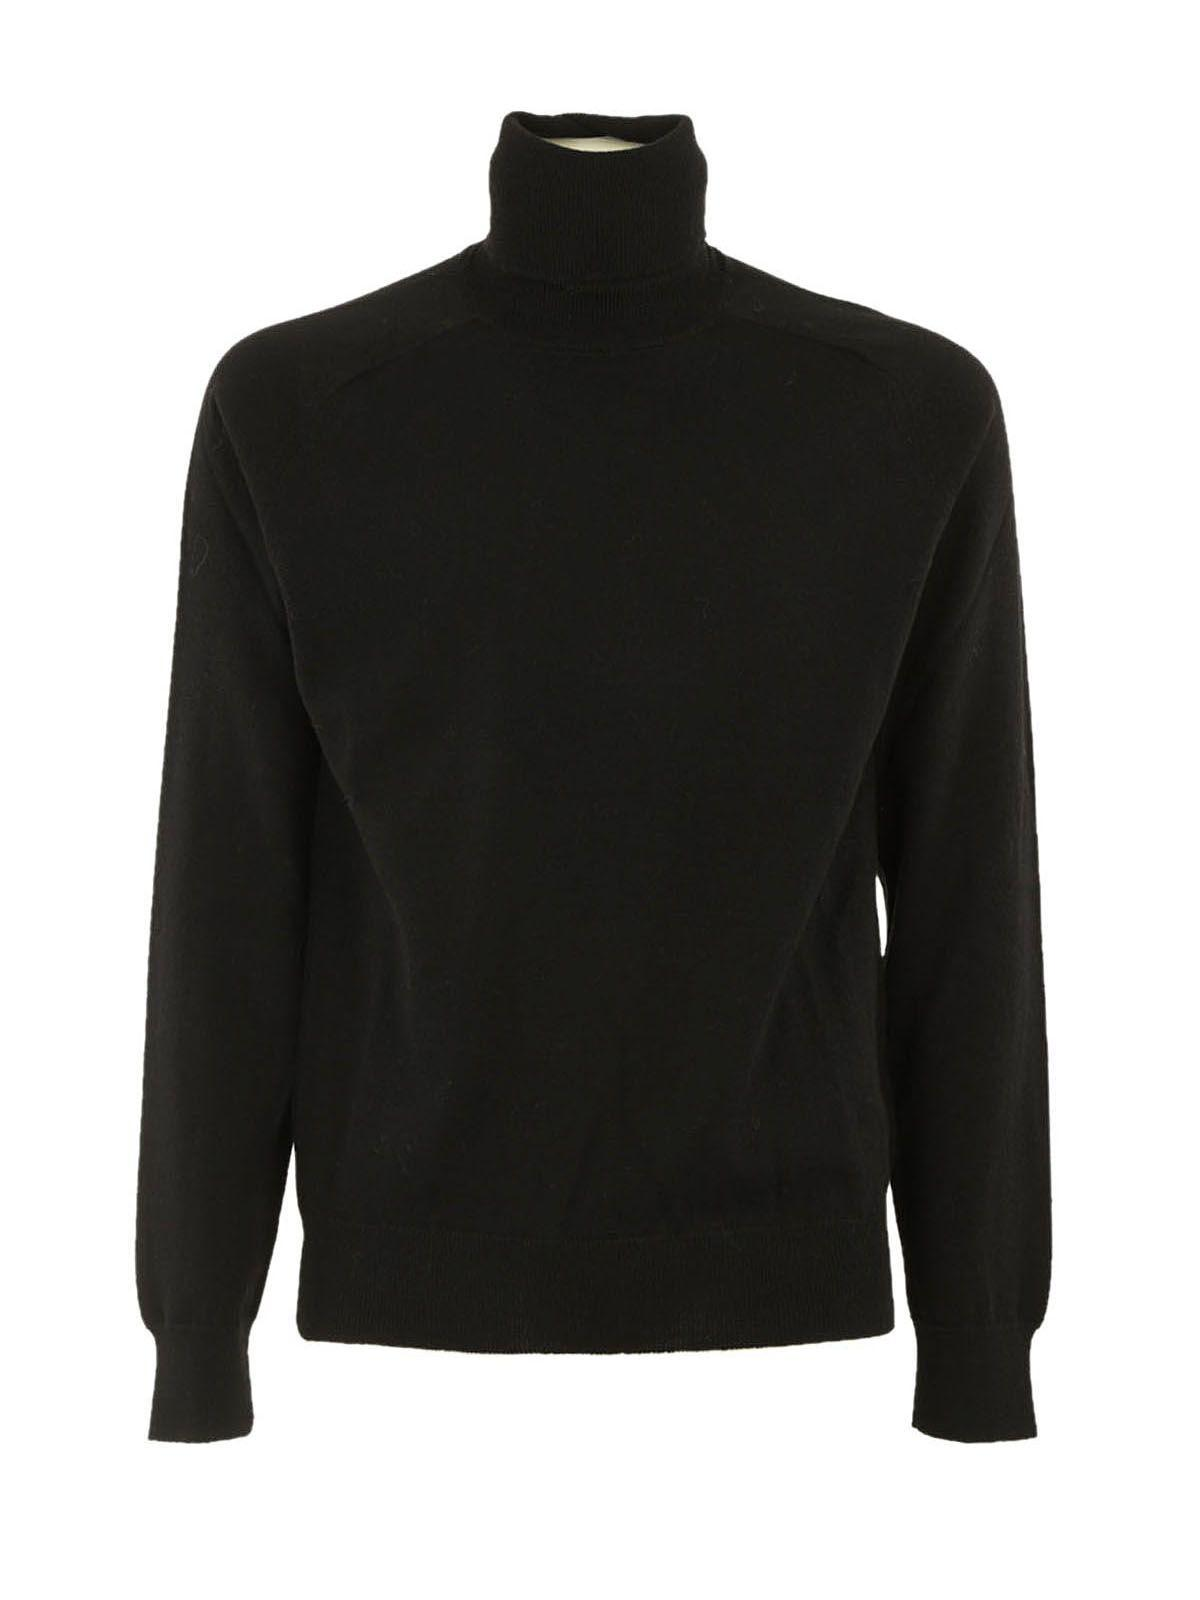 Ami Alexandre Mattiussi Ami Turtle Neck Sweater In Black